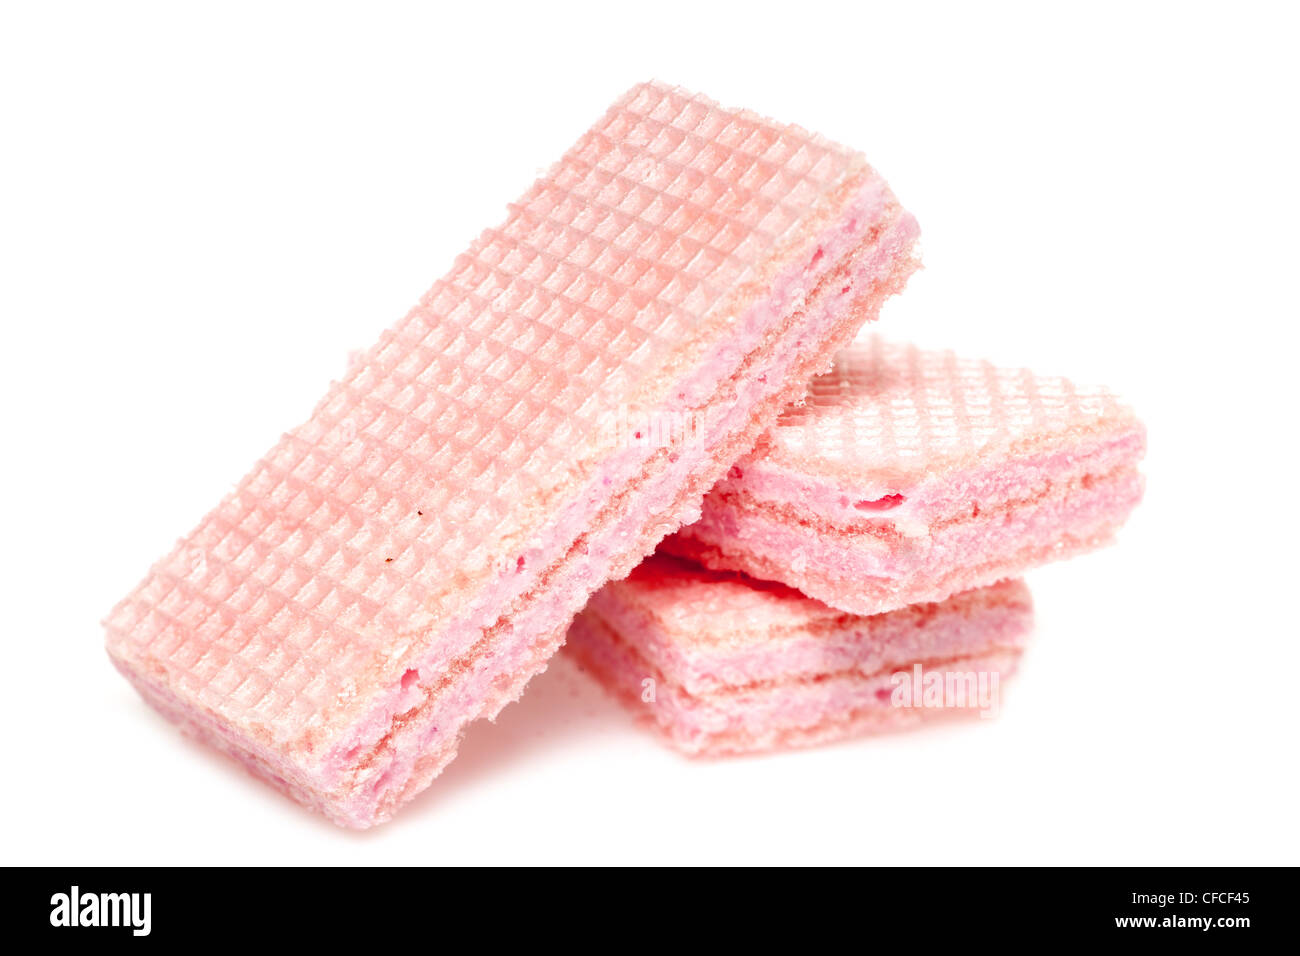 Wafer biscuits - Stock Image